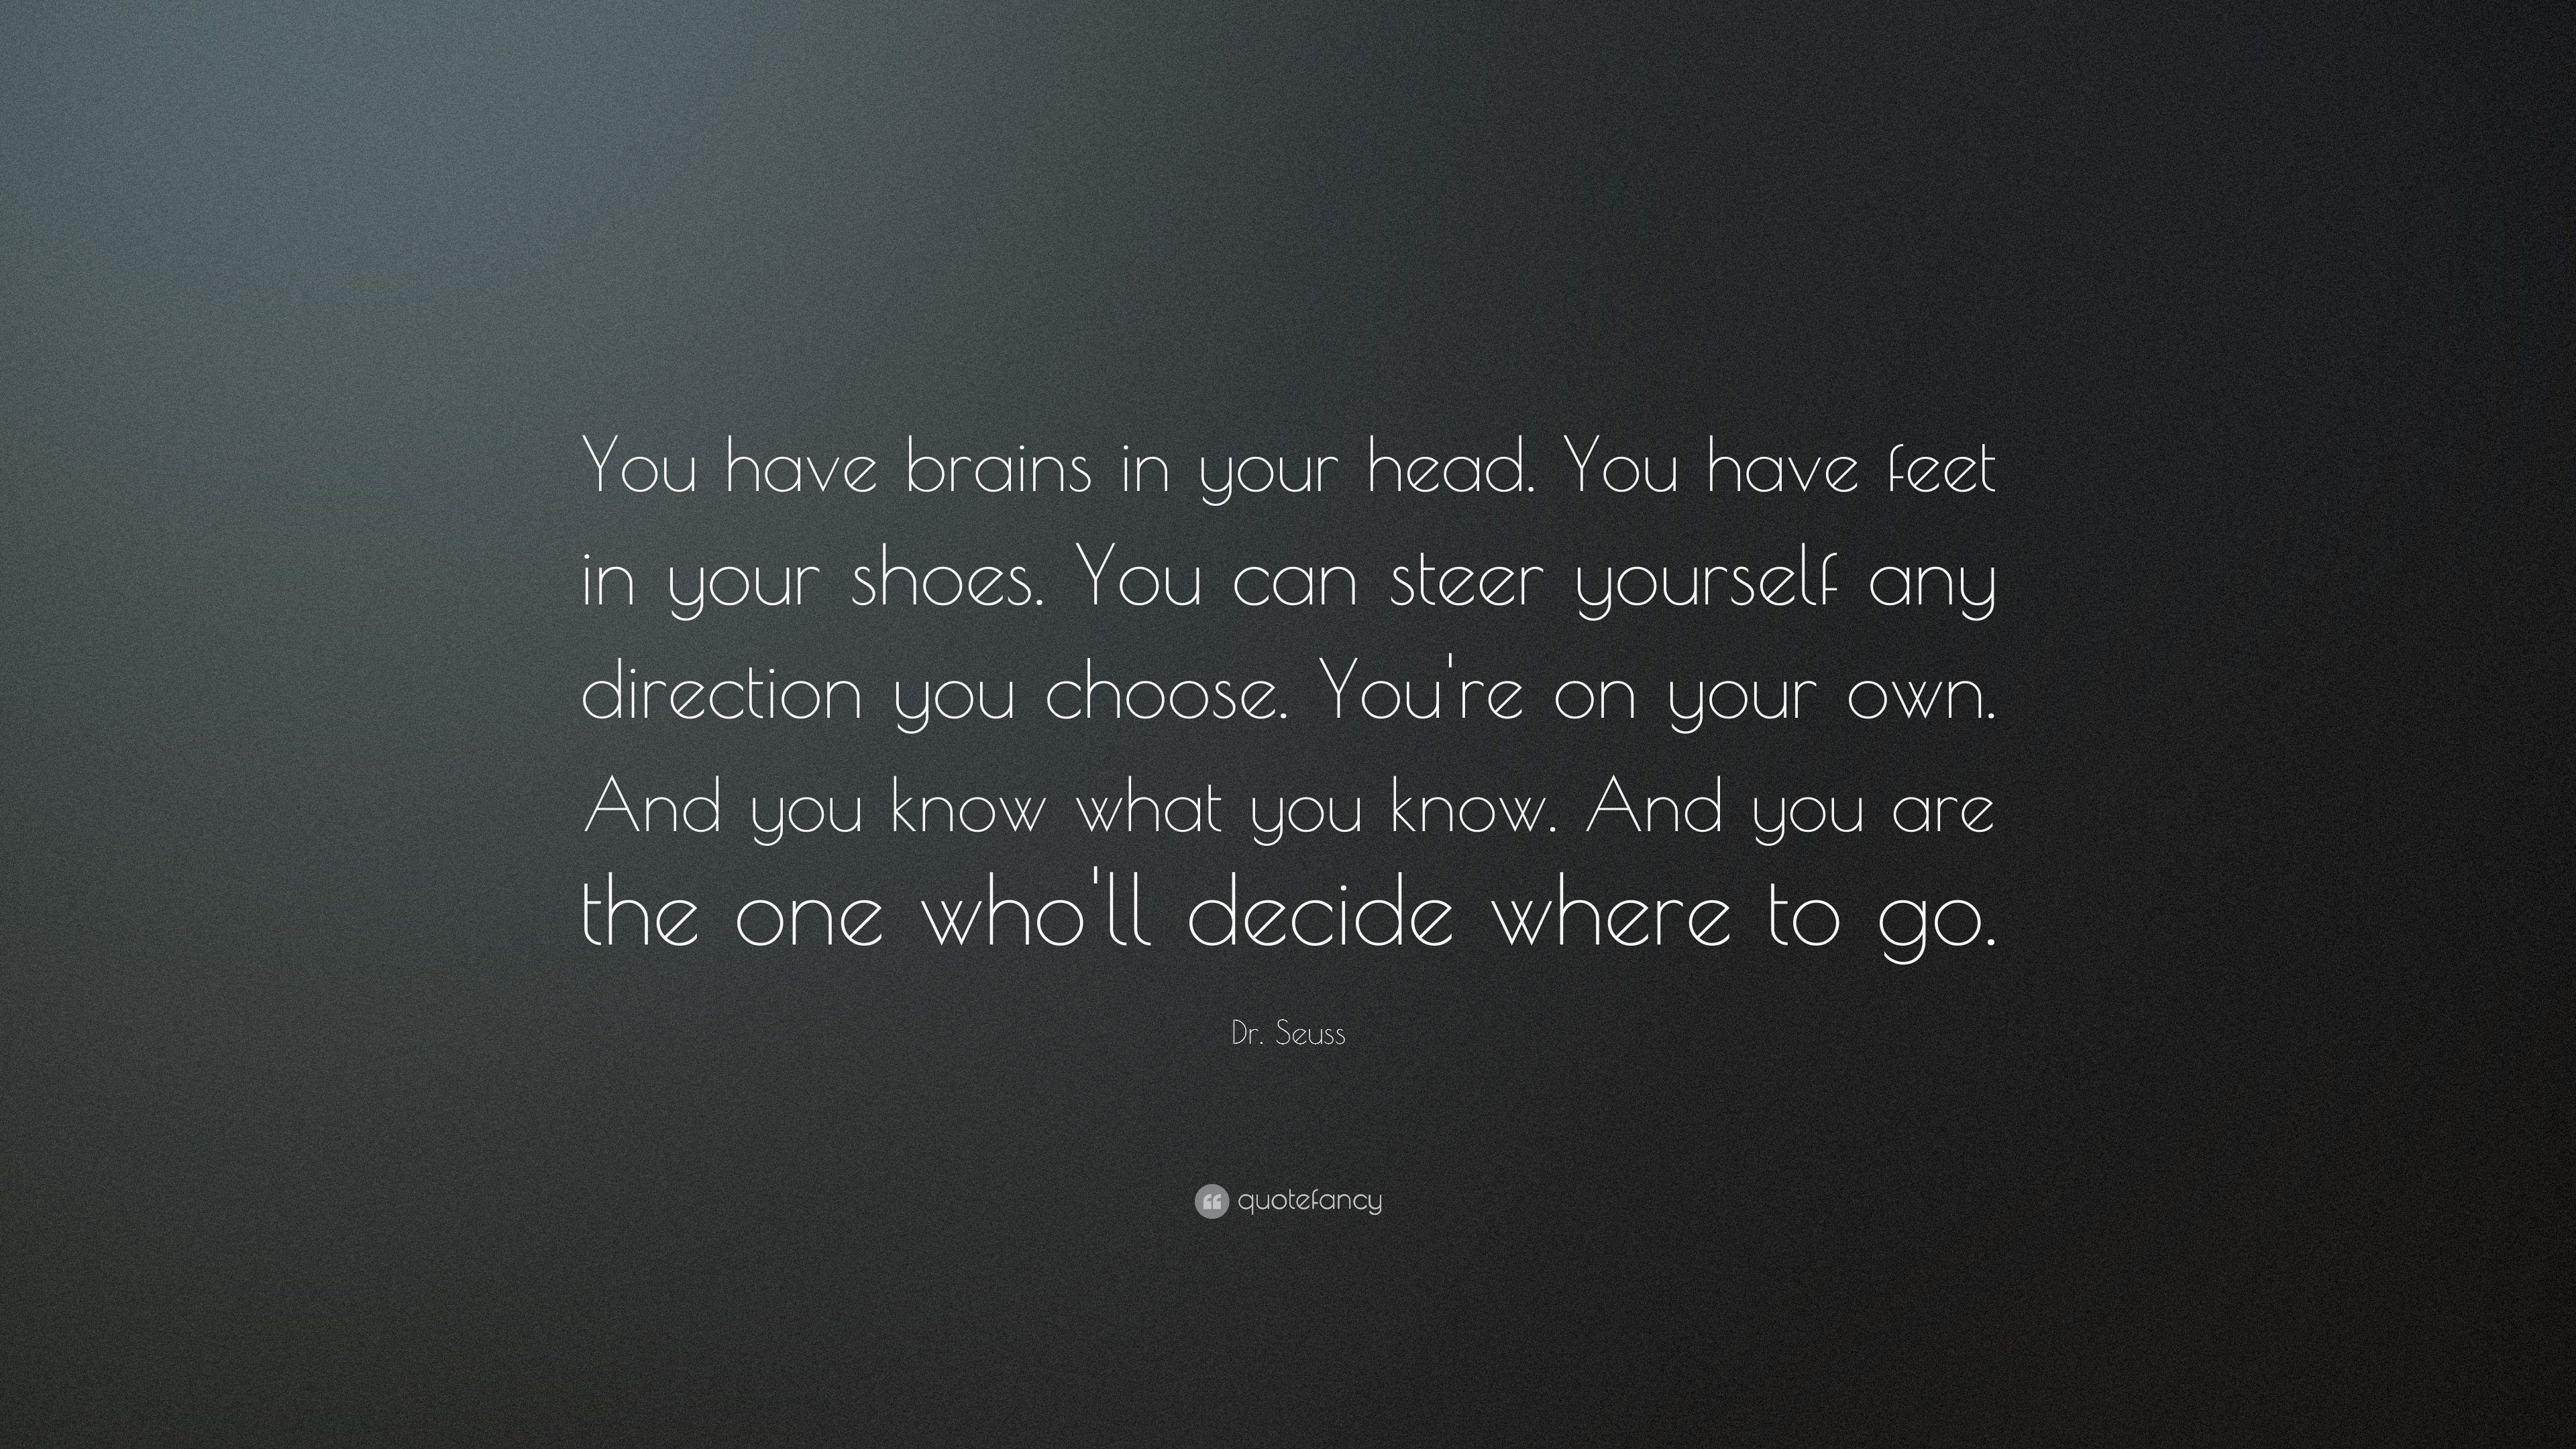 We Have Brains In Our Head Feet In Our Shoes 11